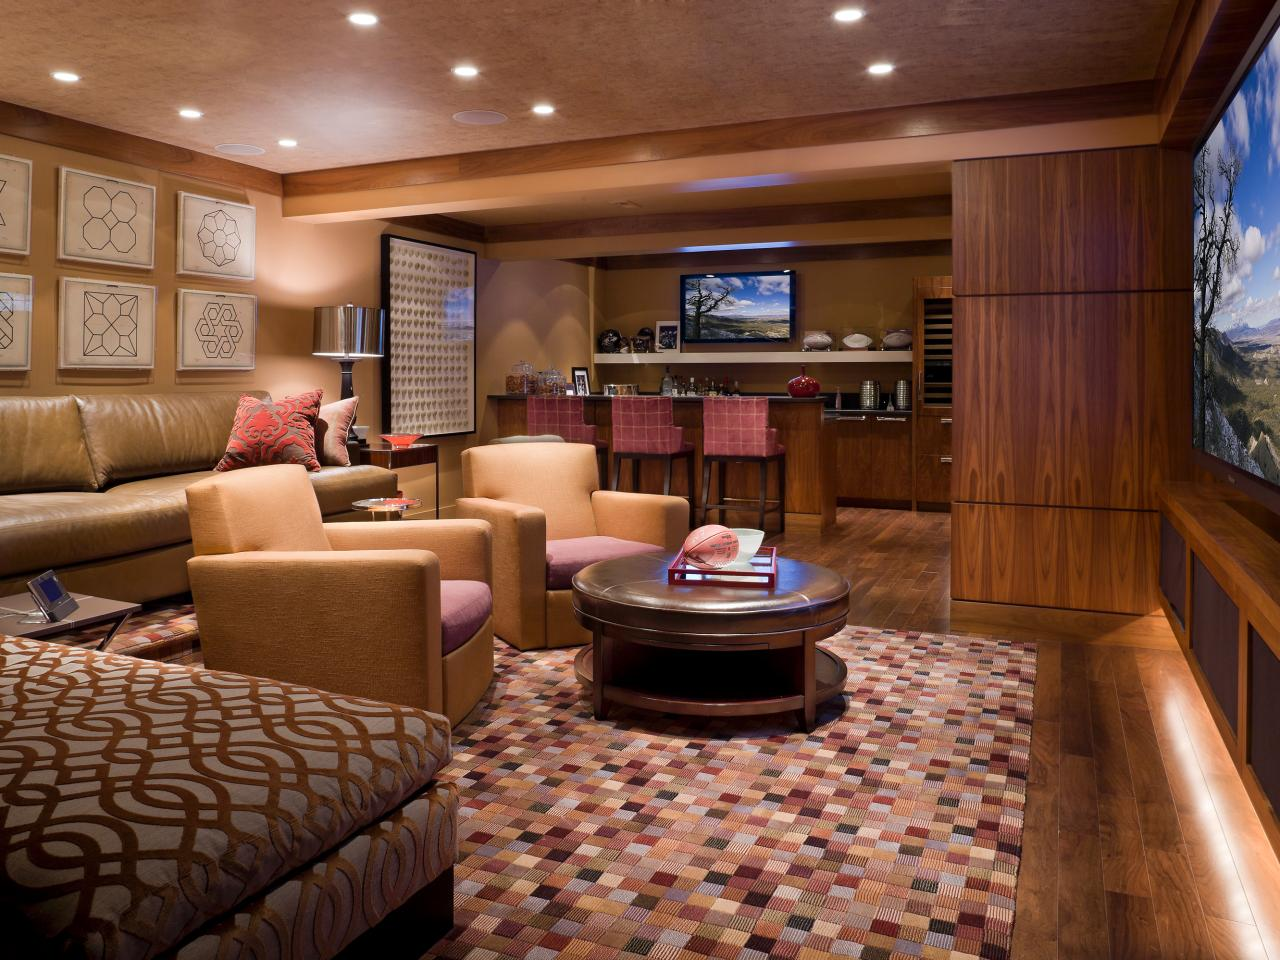 5 Amazing Basement Ideas